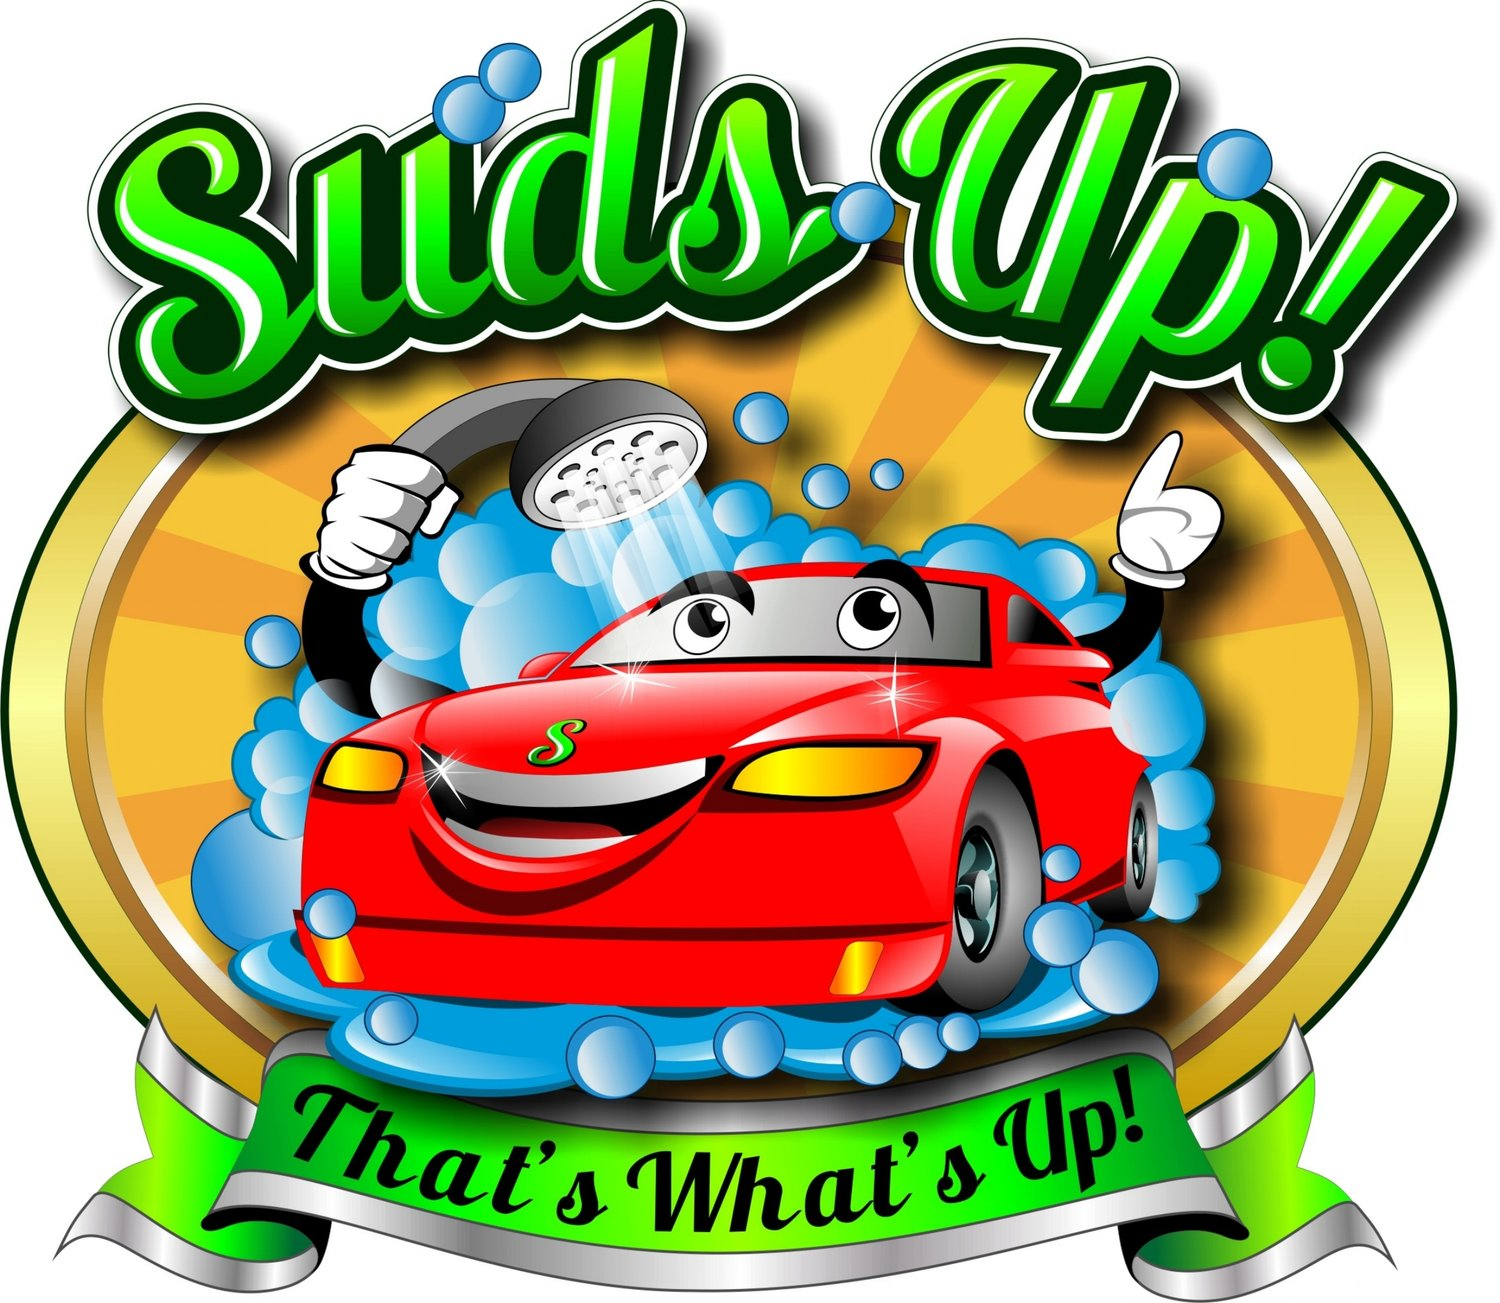 Suds up car wash solutioingenieria Images